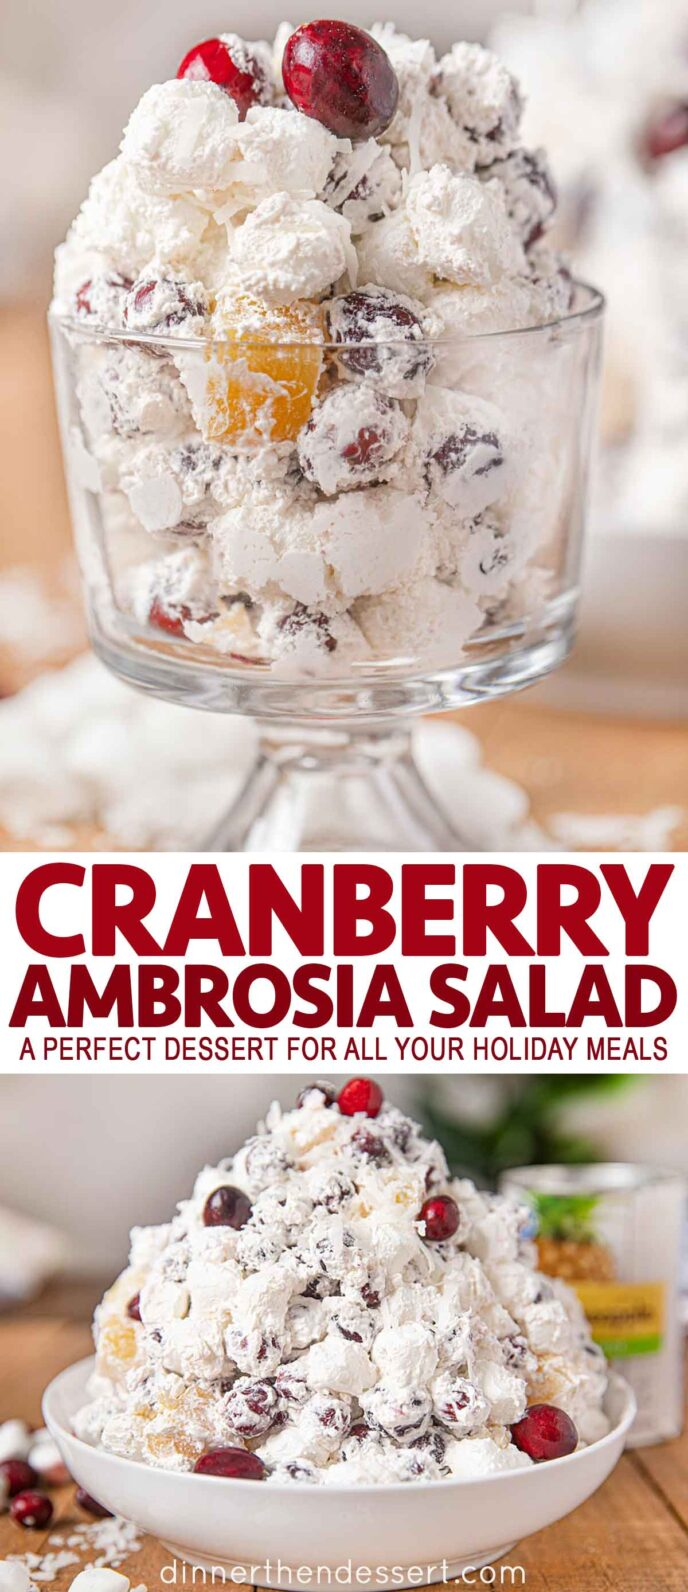 Ambrosia Salad with Cranberries